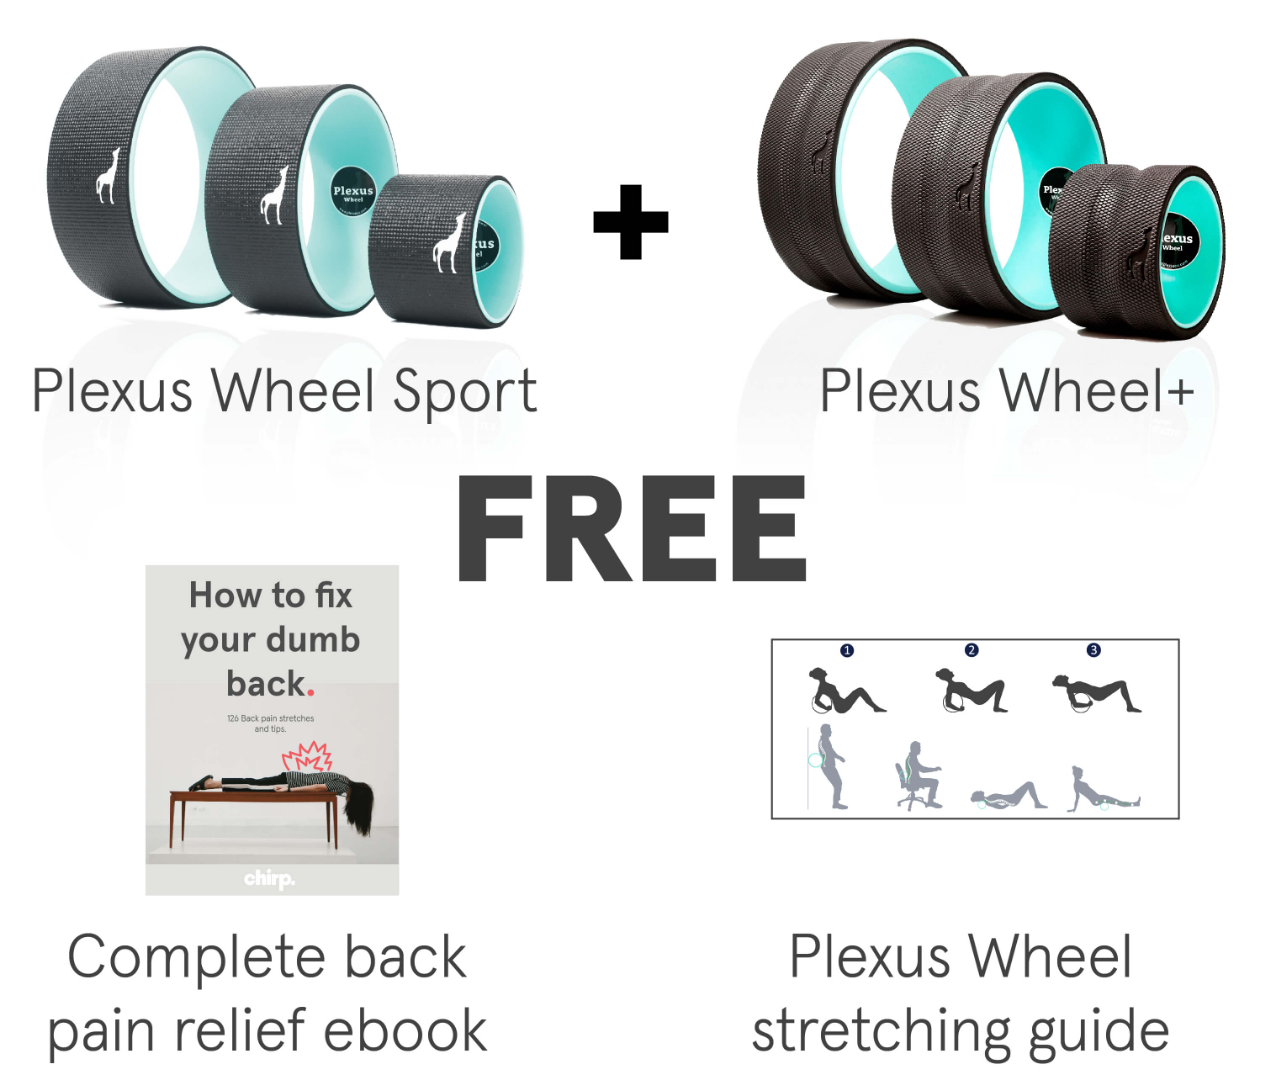 The Complete Back Pain Relief Bundle By Go Chirp